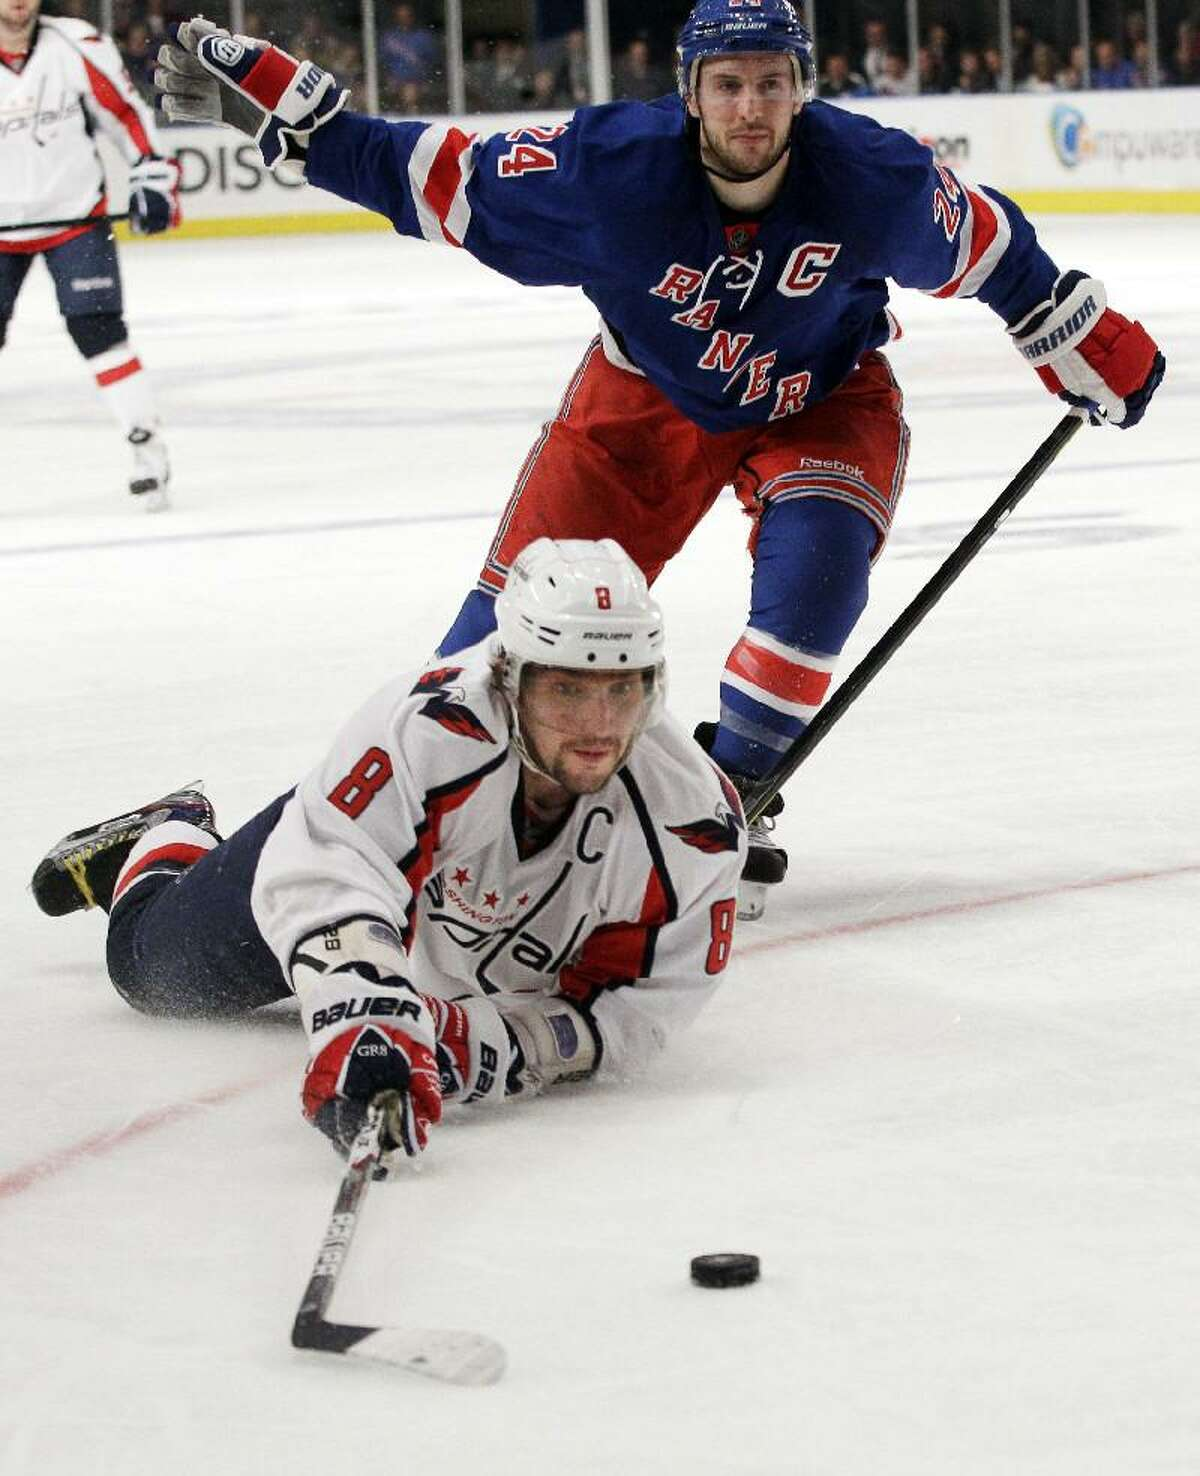 ASSOCIATED PRESS Washington Capitals' Alex Ovechkin (8) falls to the ice while fighting for control of the puck with New York Rangers' Ryan Callahan (24) during the third period of Game 1 of an NHL Stanley Cup playoff series Saturday in New York. The Rangers won the game 3-1.